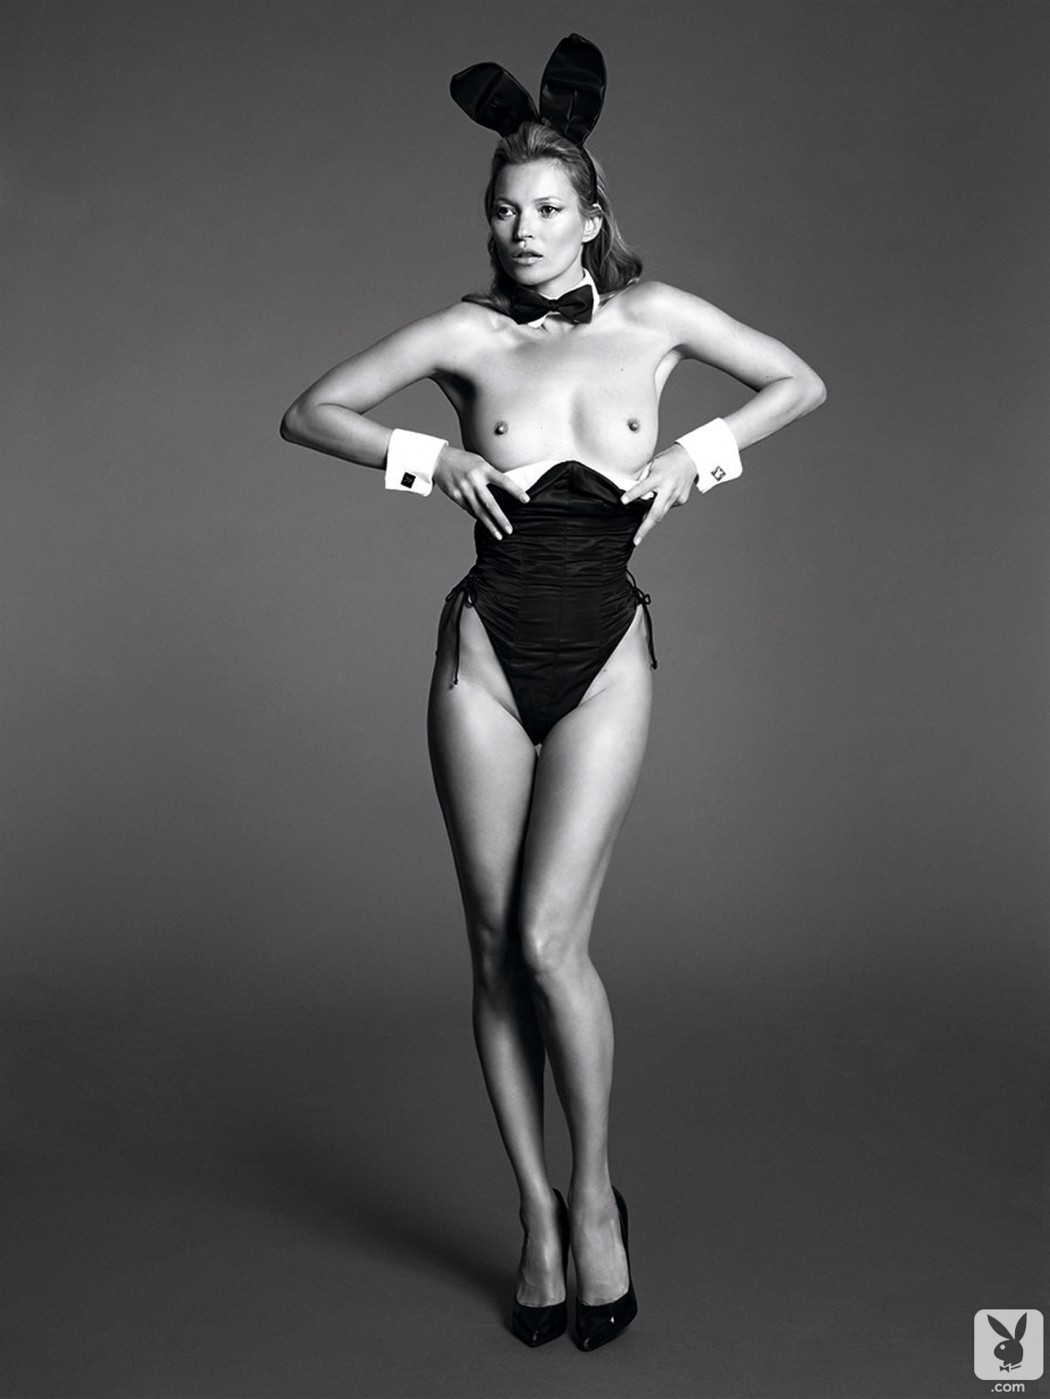 Happy Easter Heres Kate Moss As A Playboy Bunny -6129